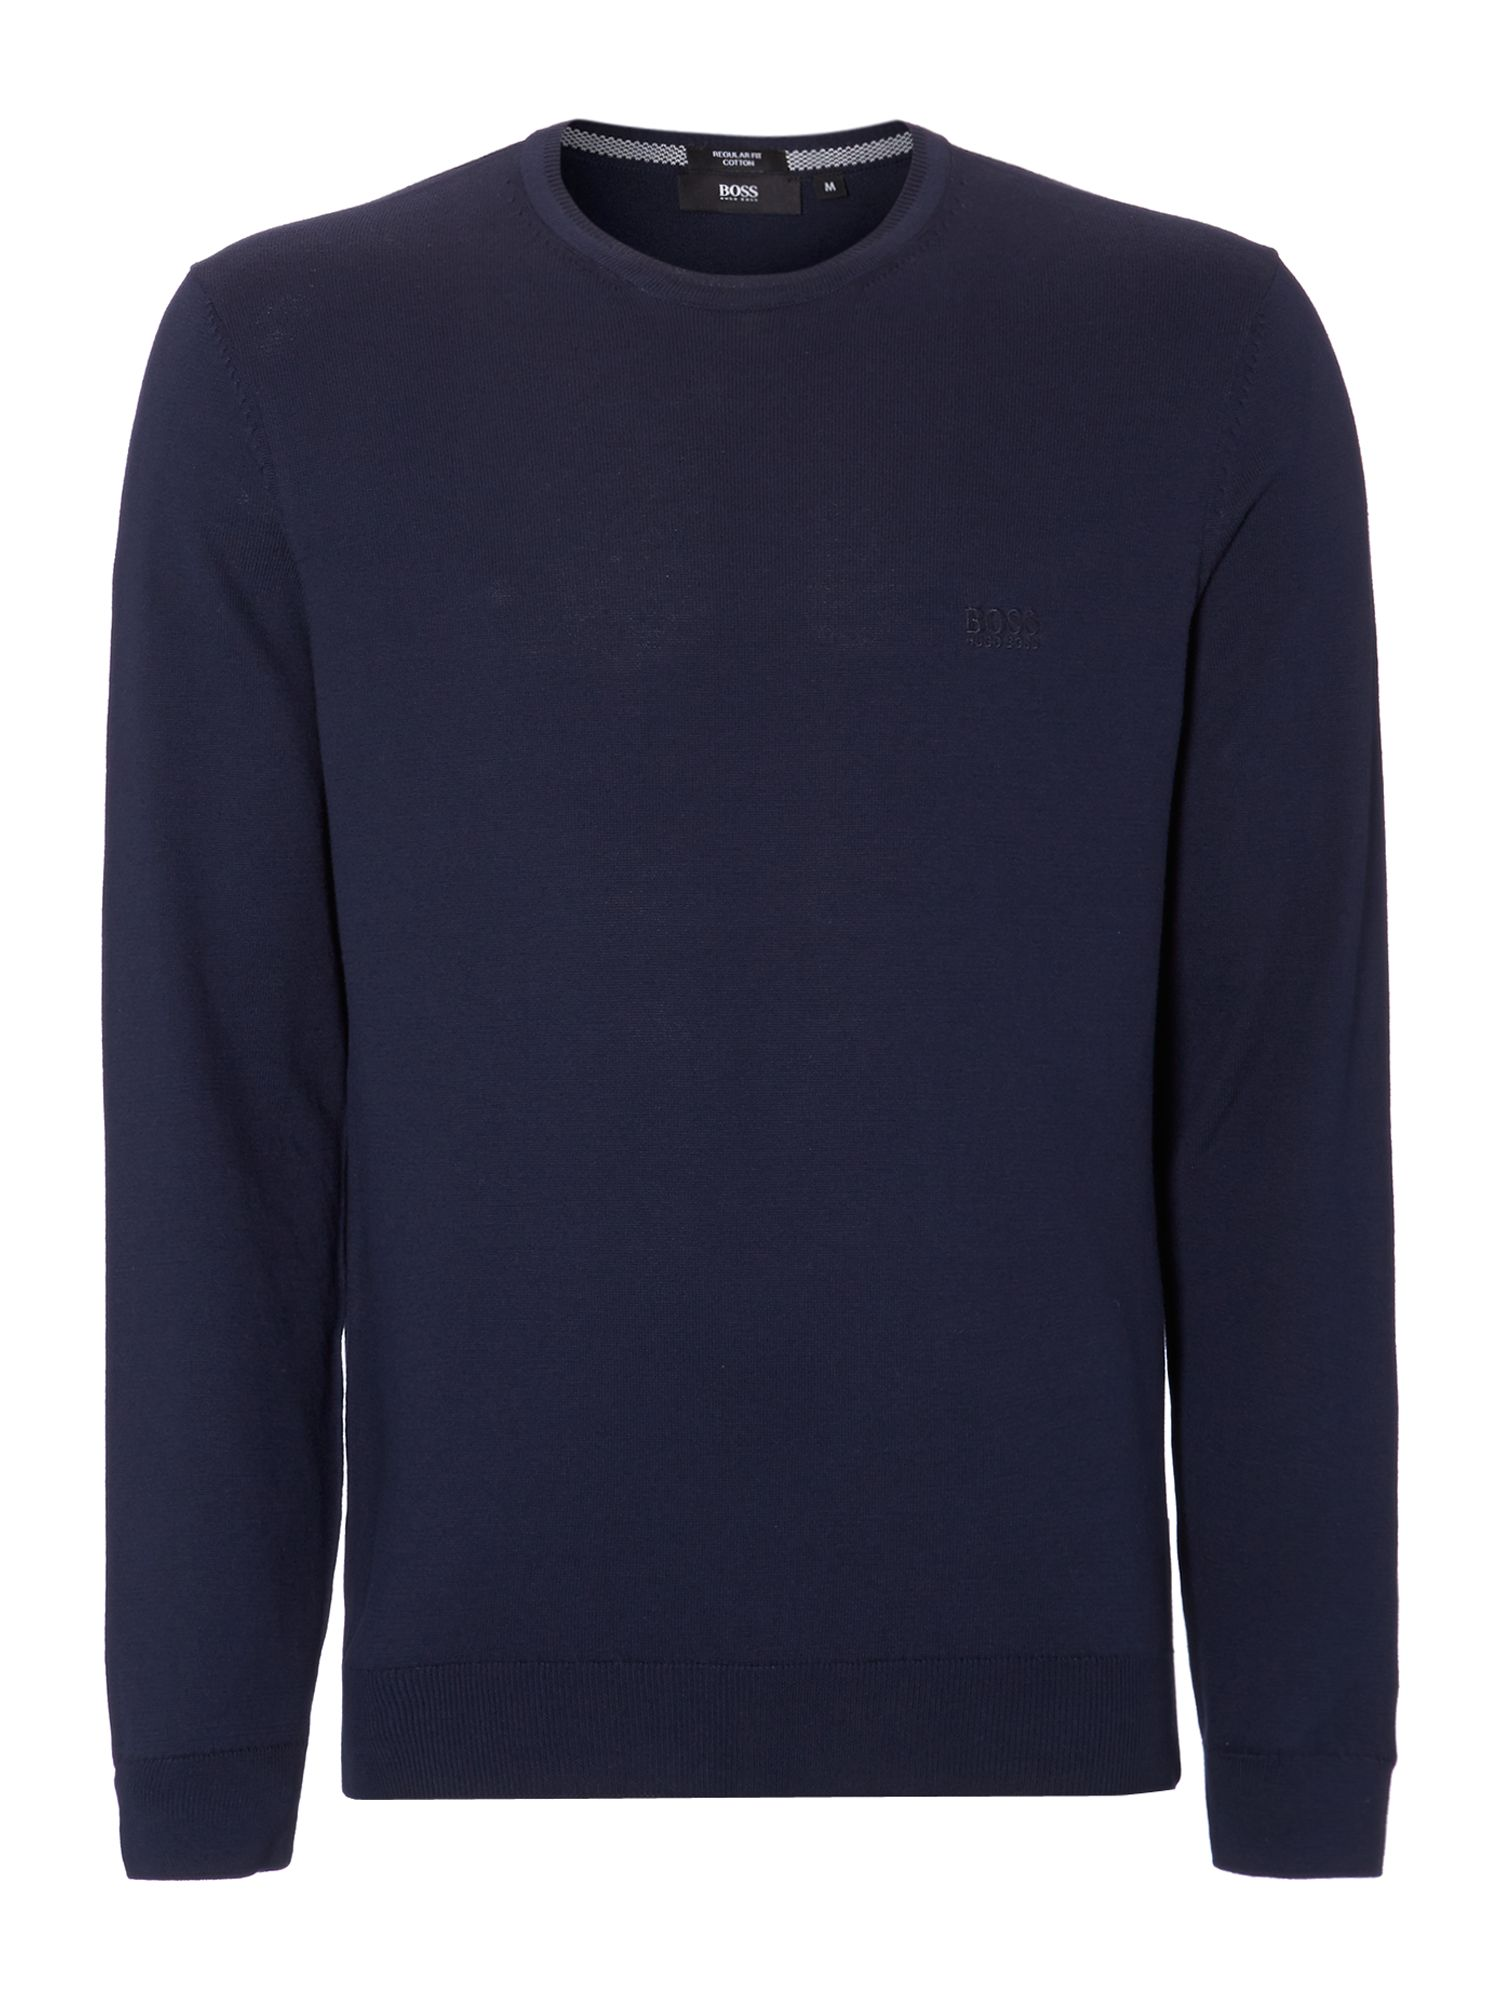 Crew neck logo jumper